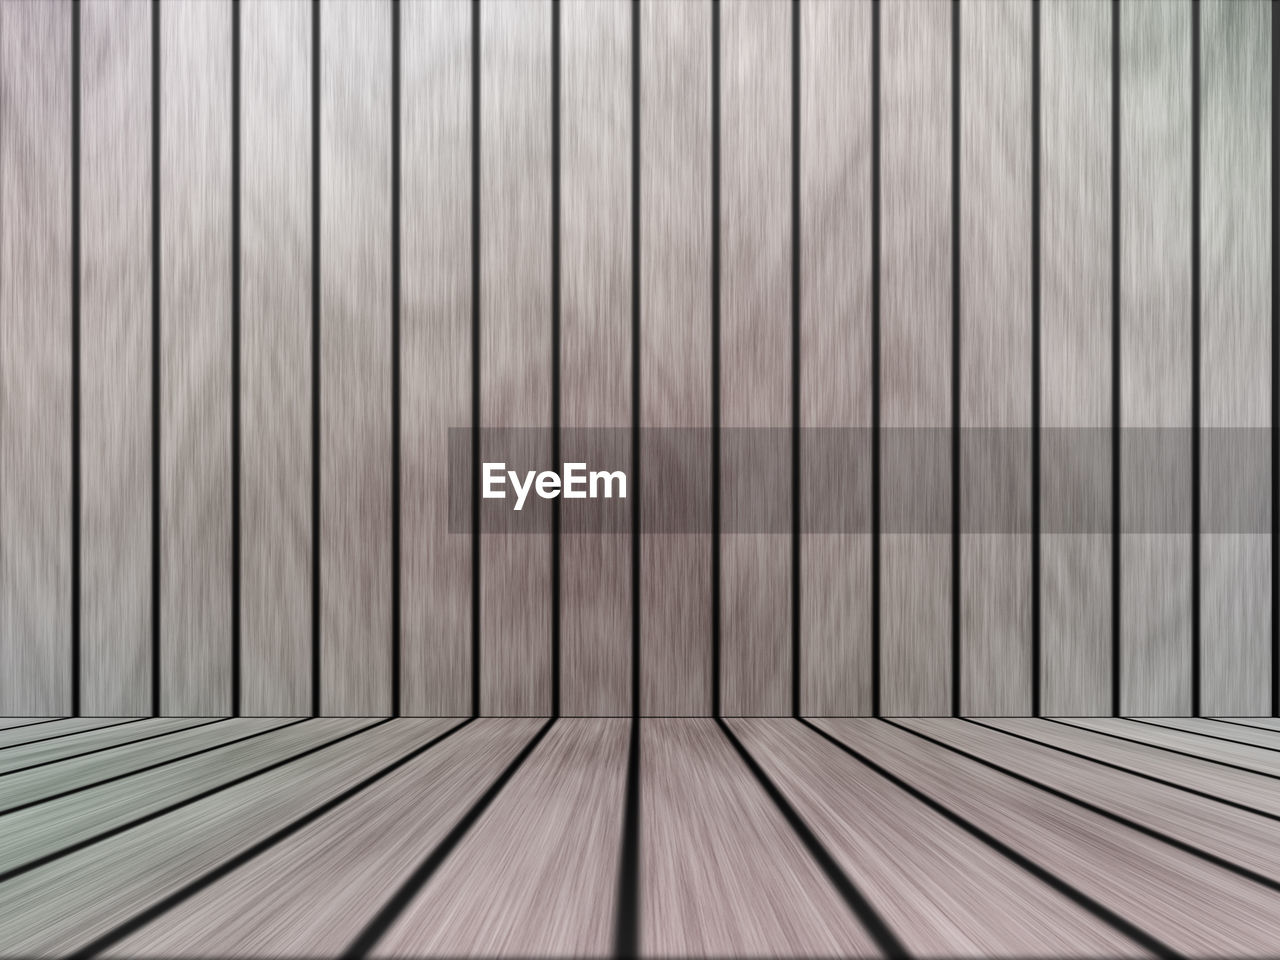 wood - material, pattern, full frame, backgrounds, textured, no people, wood, day, boardwalk, brown, wood paneling, plank, footpath, repetition, built structure, outdoors, close-up, high angle view, floorboard, wood grain